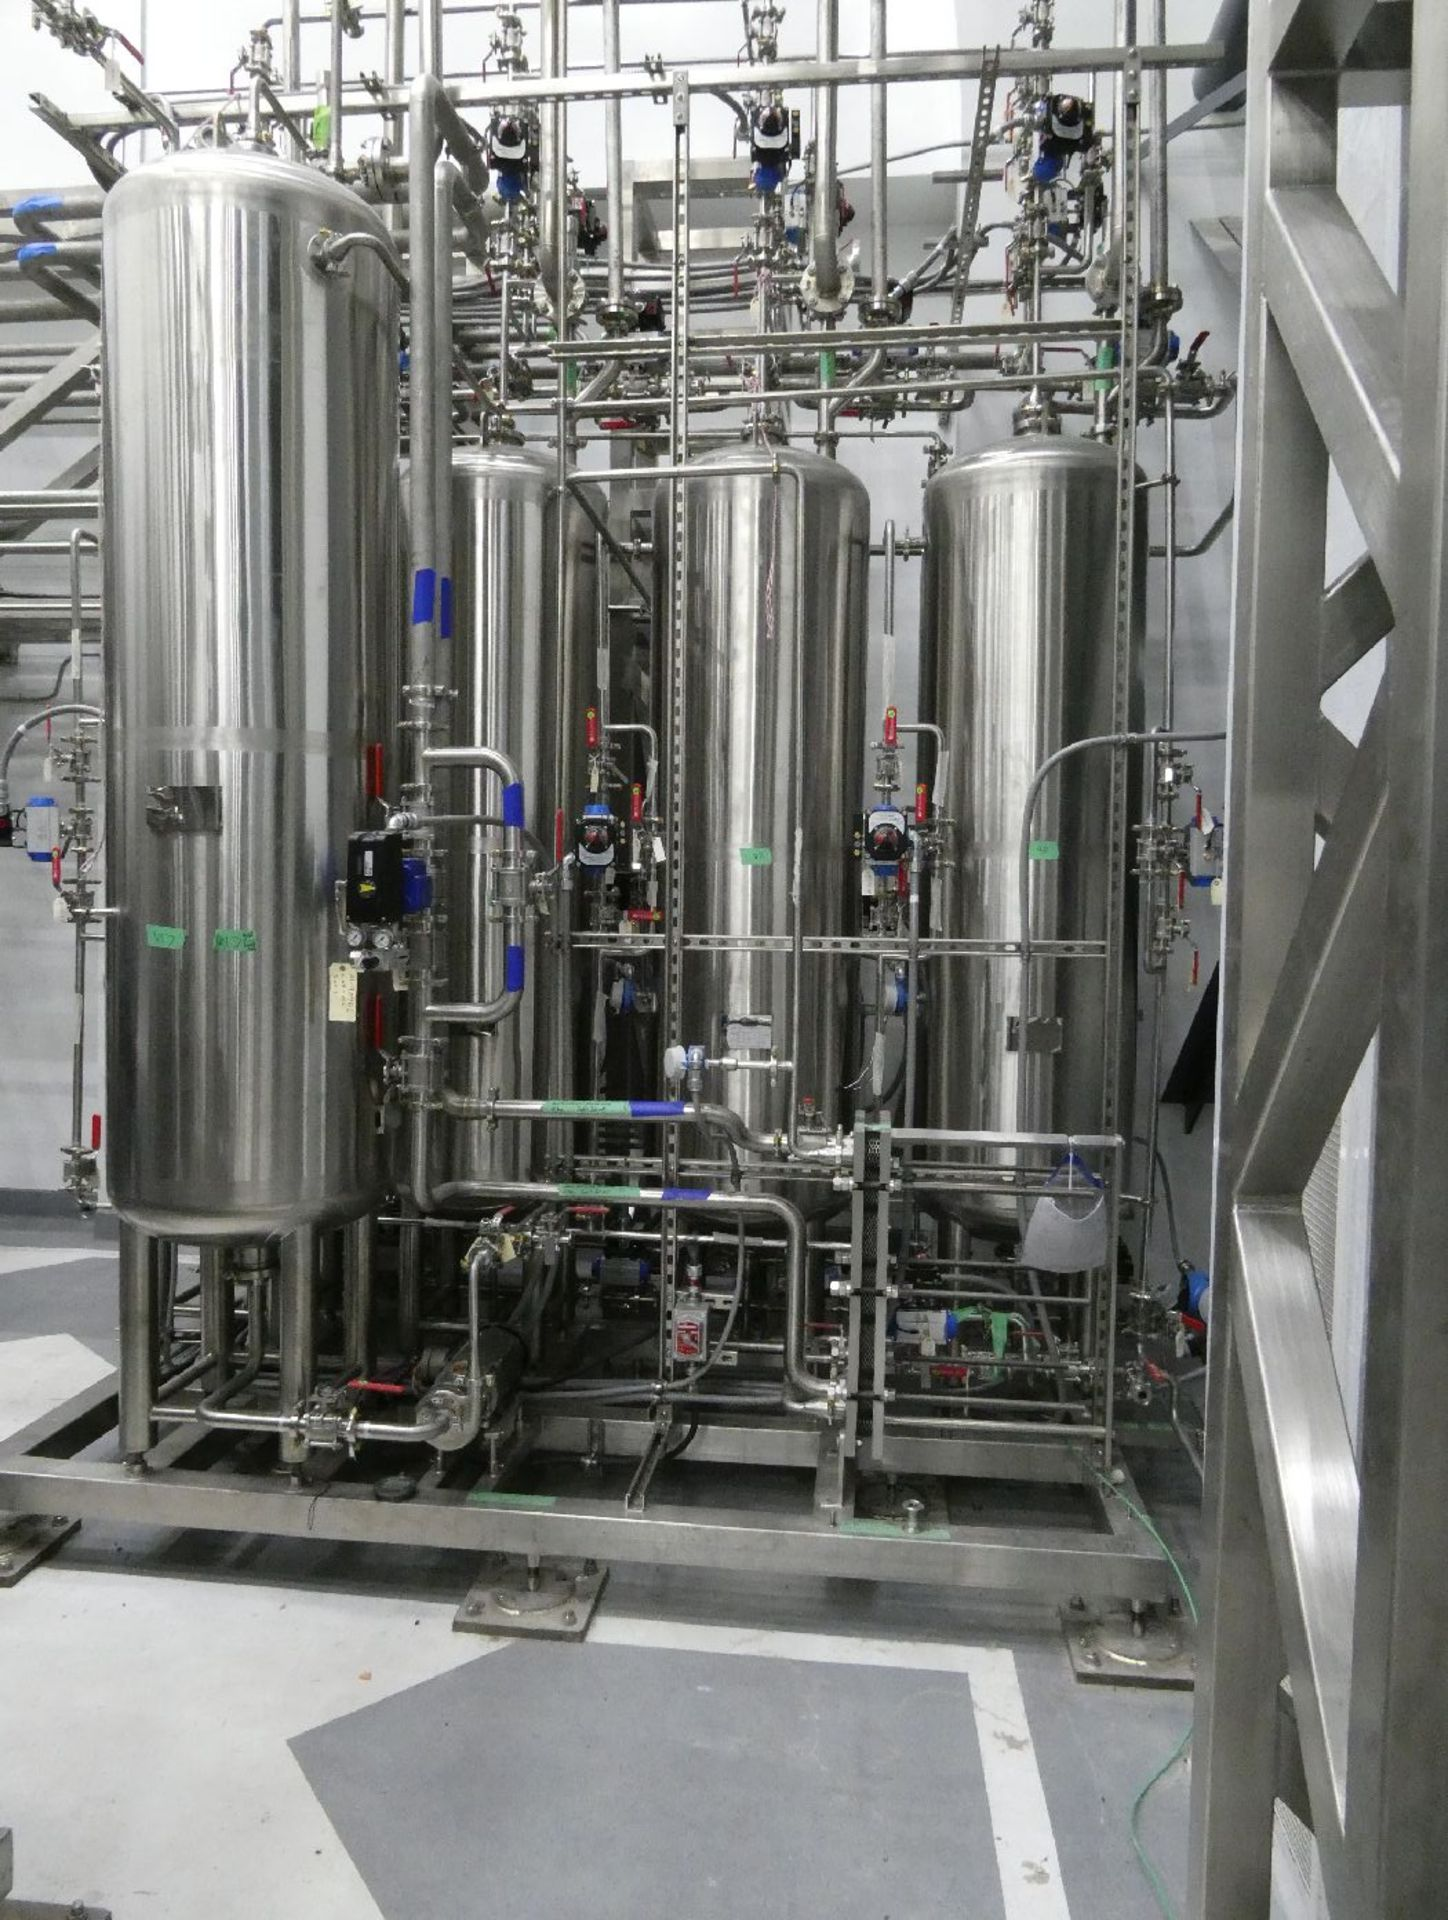 ROTAX Closed Loop Solvent Based Continuous Oil Extraction System - Image 33 of 68